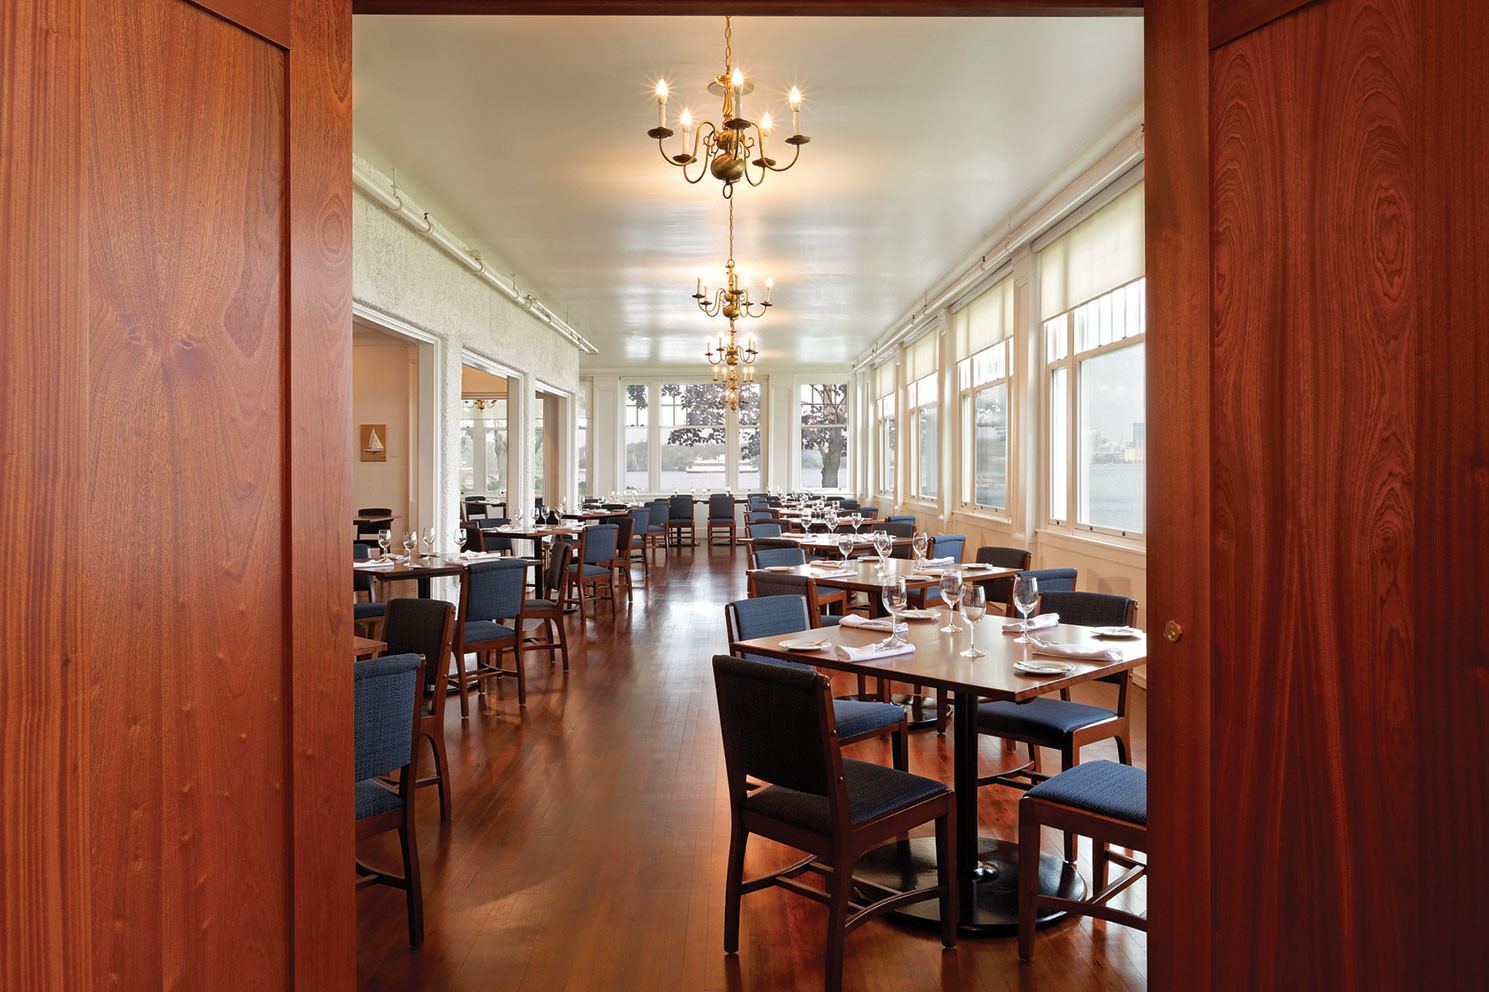 View through open wood doors of white dining room with blue chairs, wood tables and floor, chandeliers, and large windows